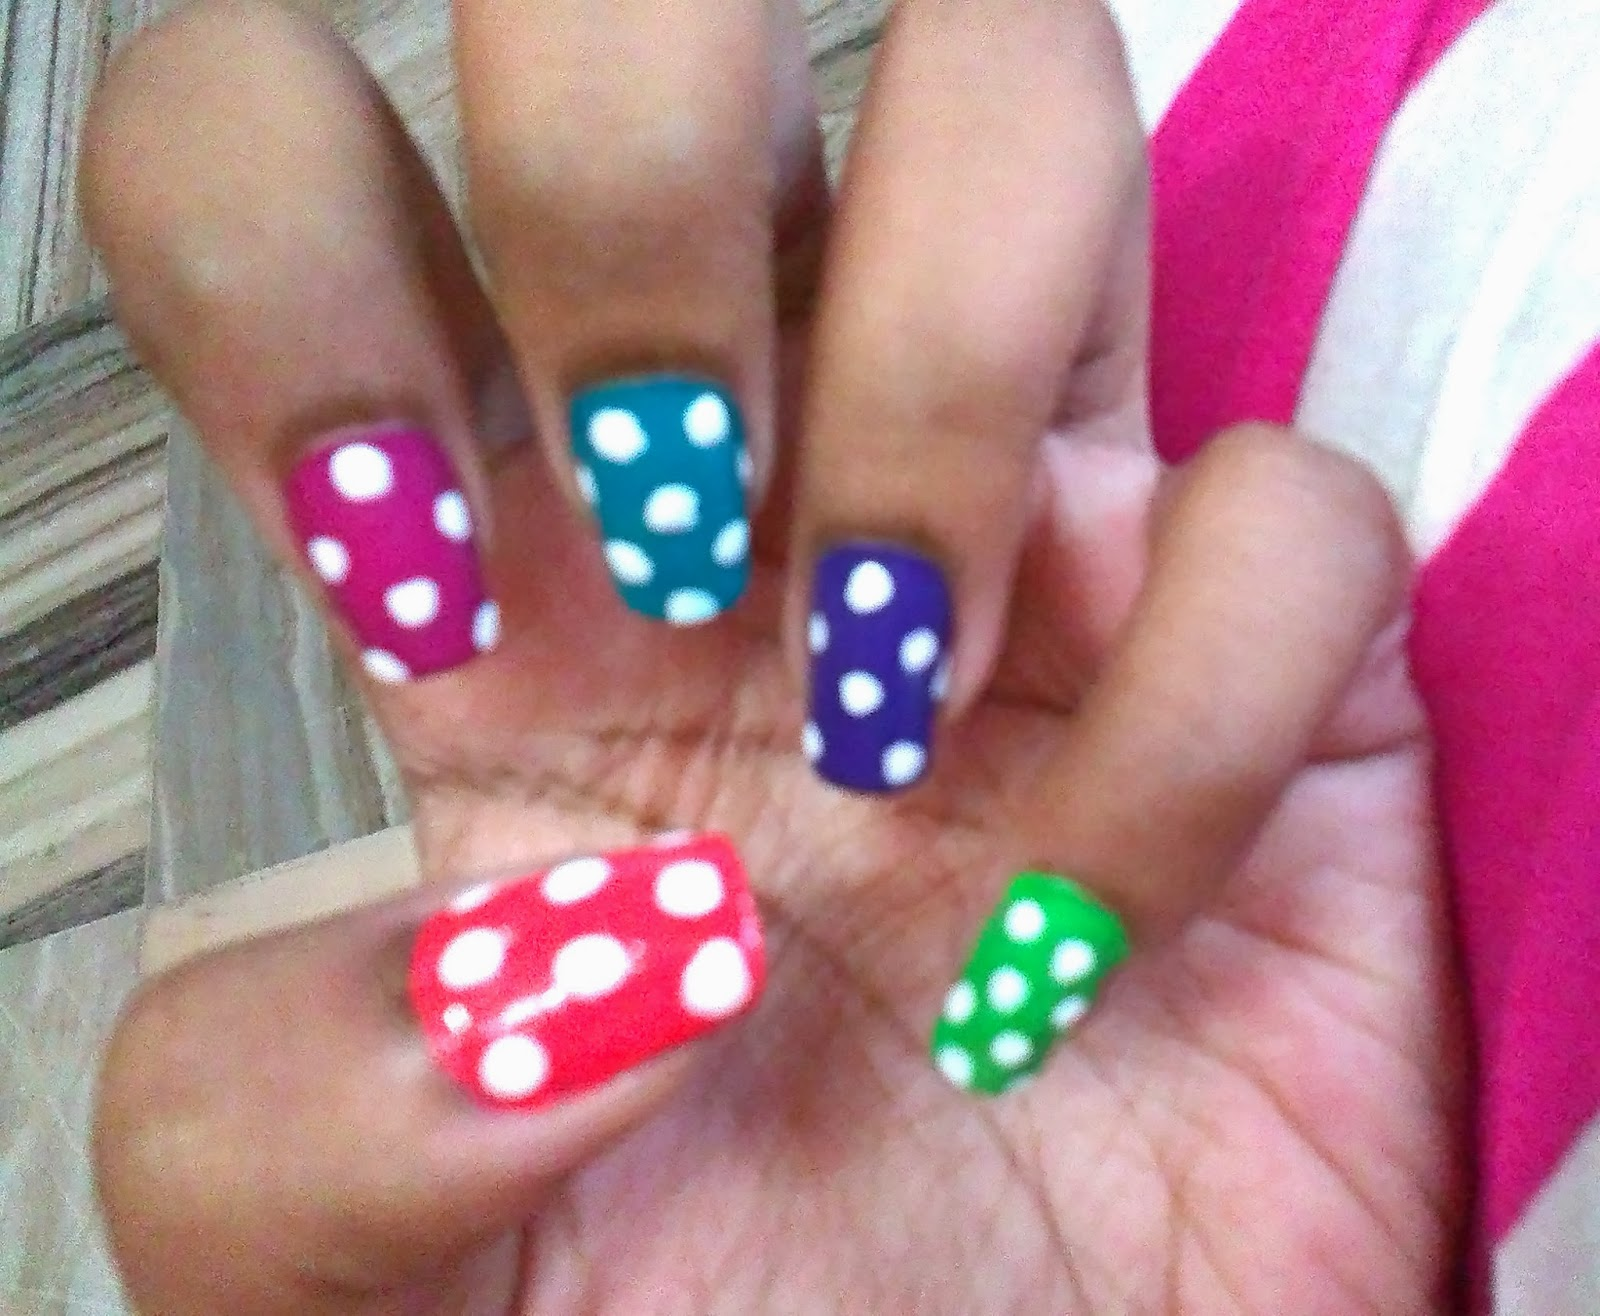 Nails Art: Fashionable N Chic: Funky Nail Art